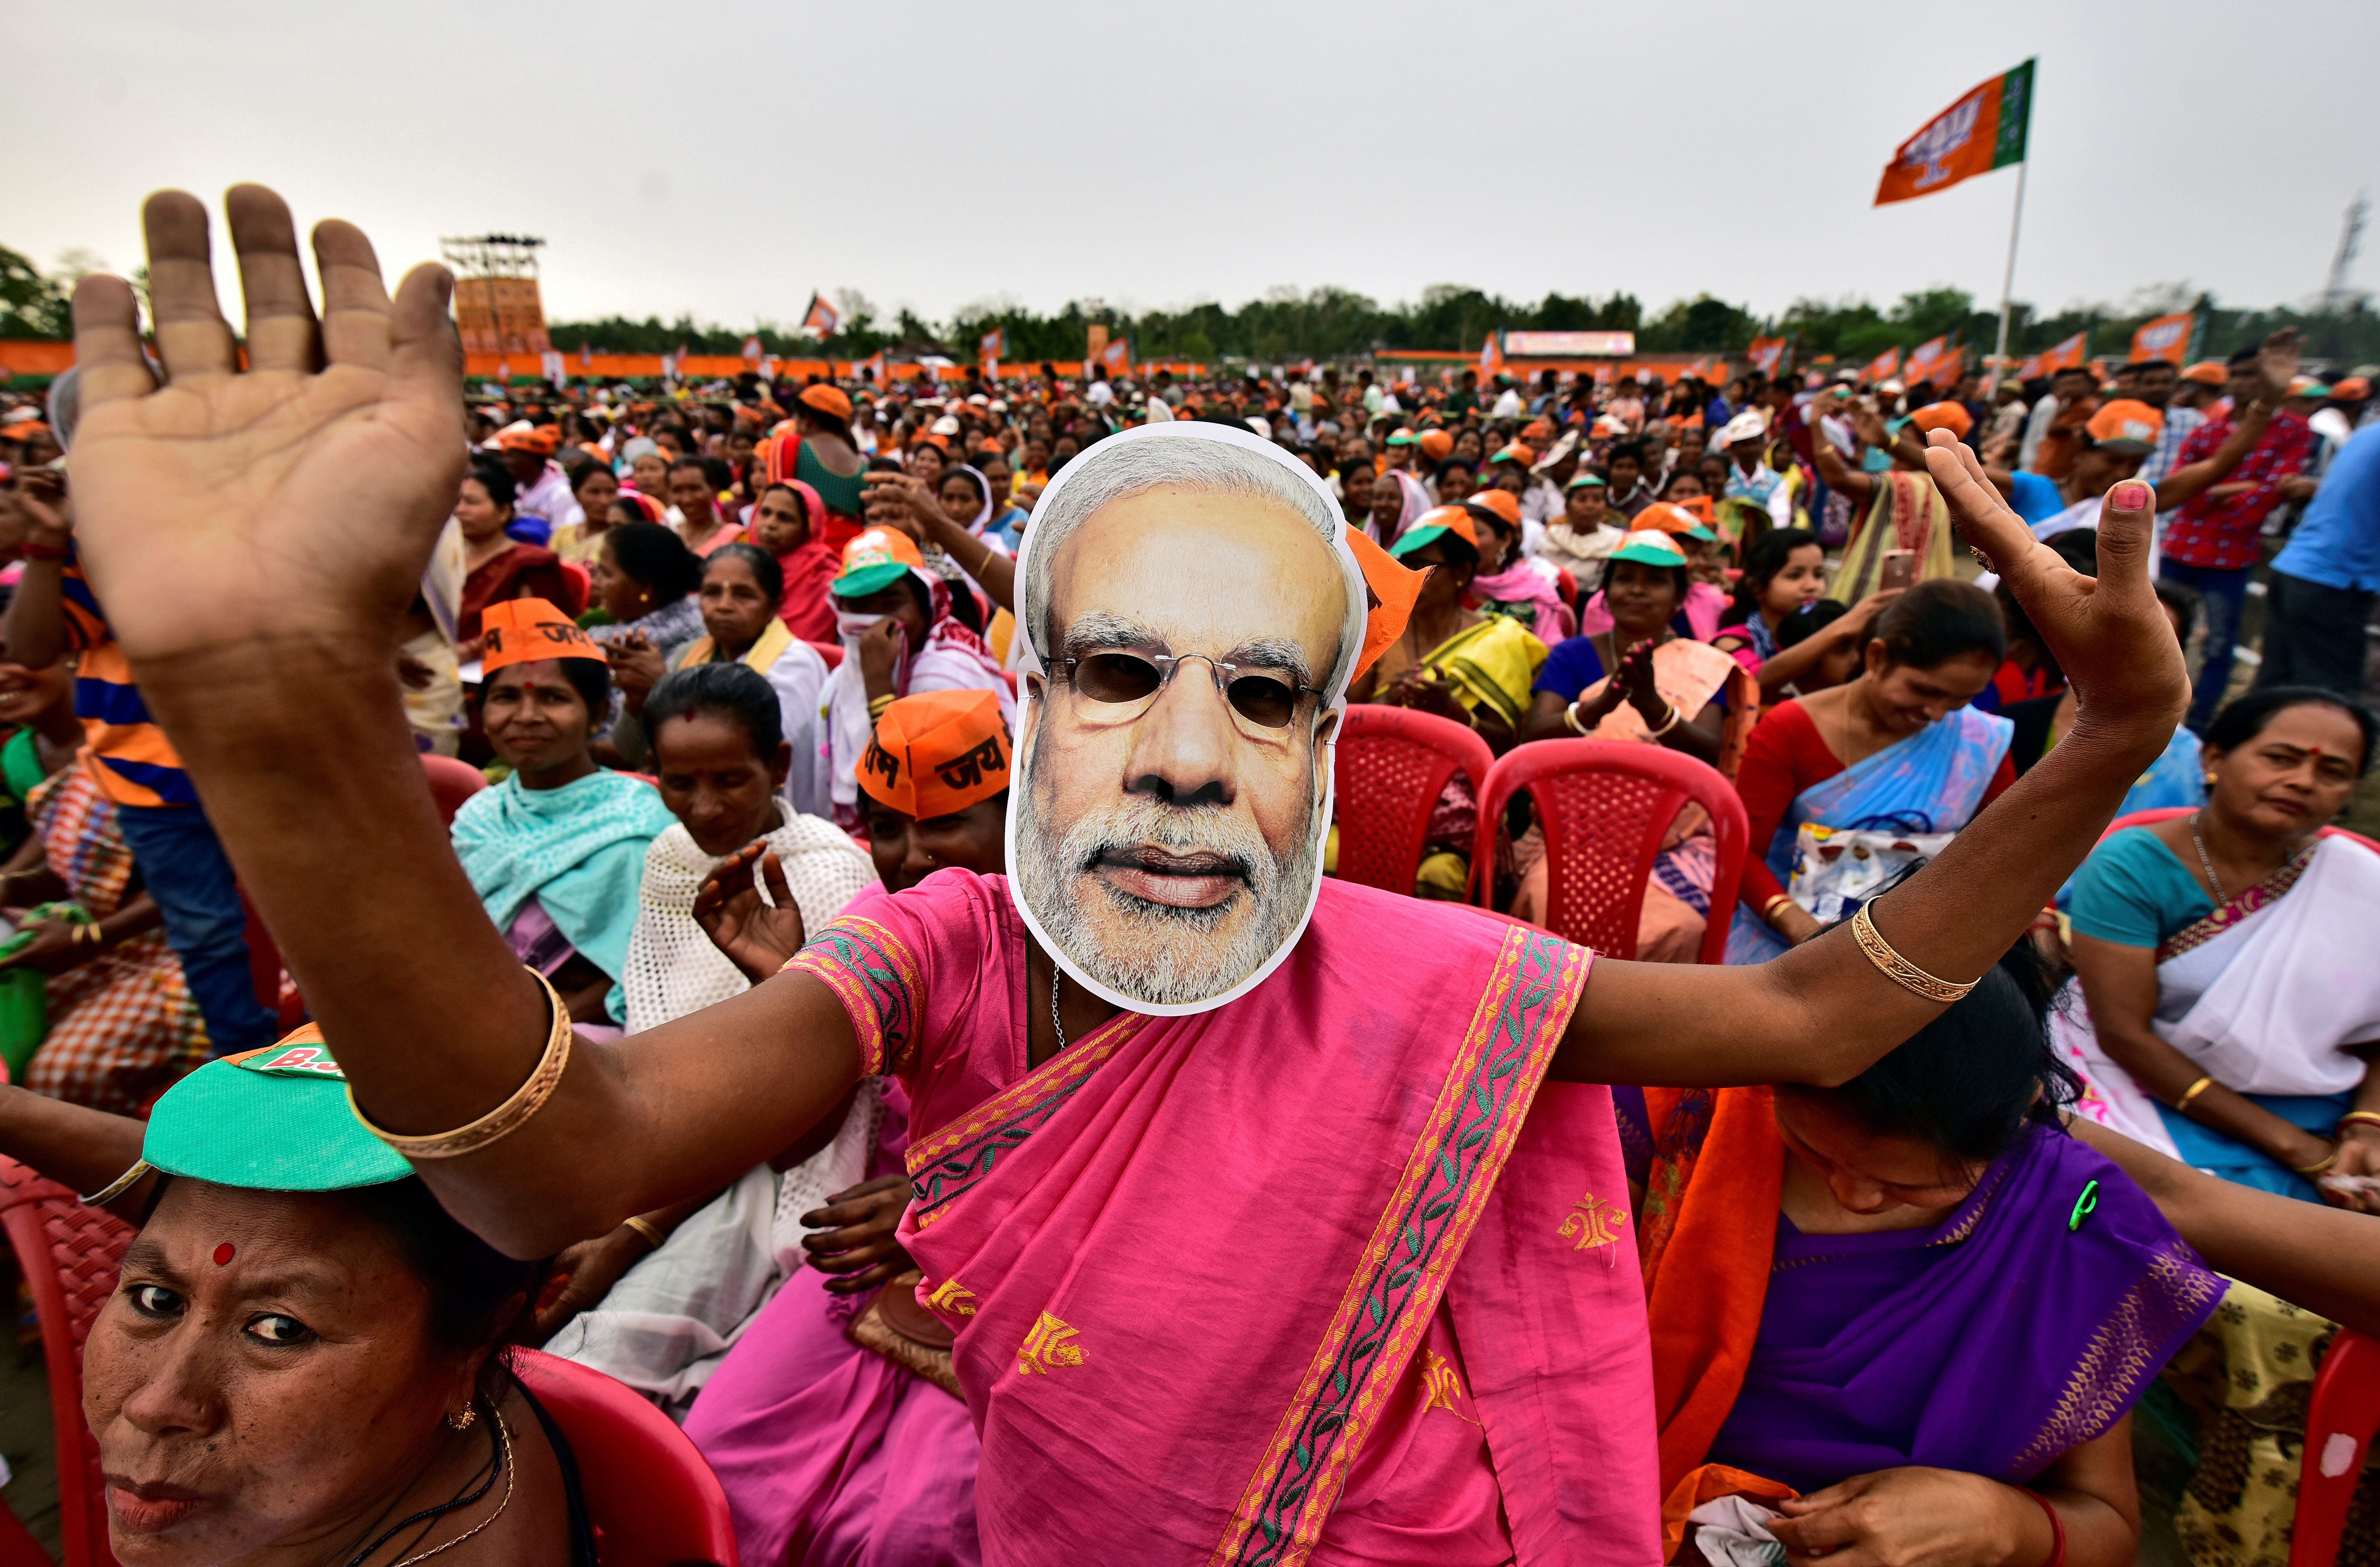 A woman wearing a mask of Prime Minister Narendra Modi dances as she attends an election campaign rally being addressed by India's ruling Bharatiya Janata Party (BJP) President Amit Shah at Ahatguri village in Morigaon district in the northeastern state of Assam, India, April 5, 2019. REUTERS/Anuwar Hazarika